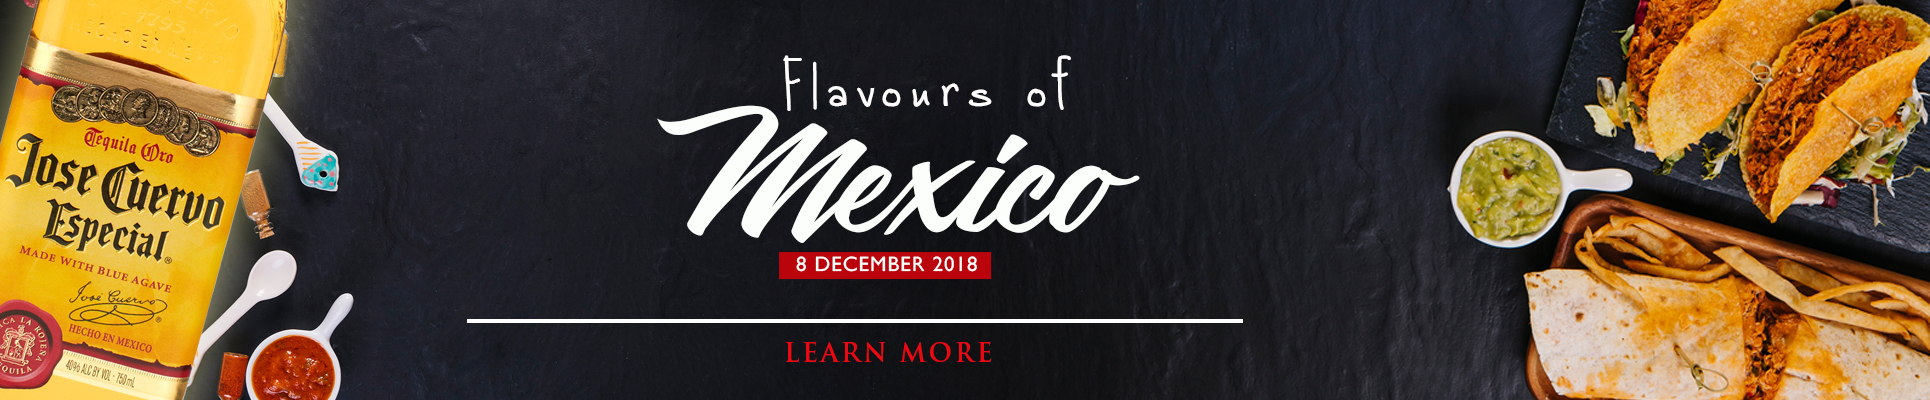 Misty Hills Flavours of Mexico 2018